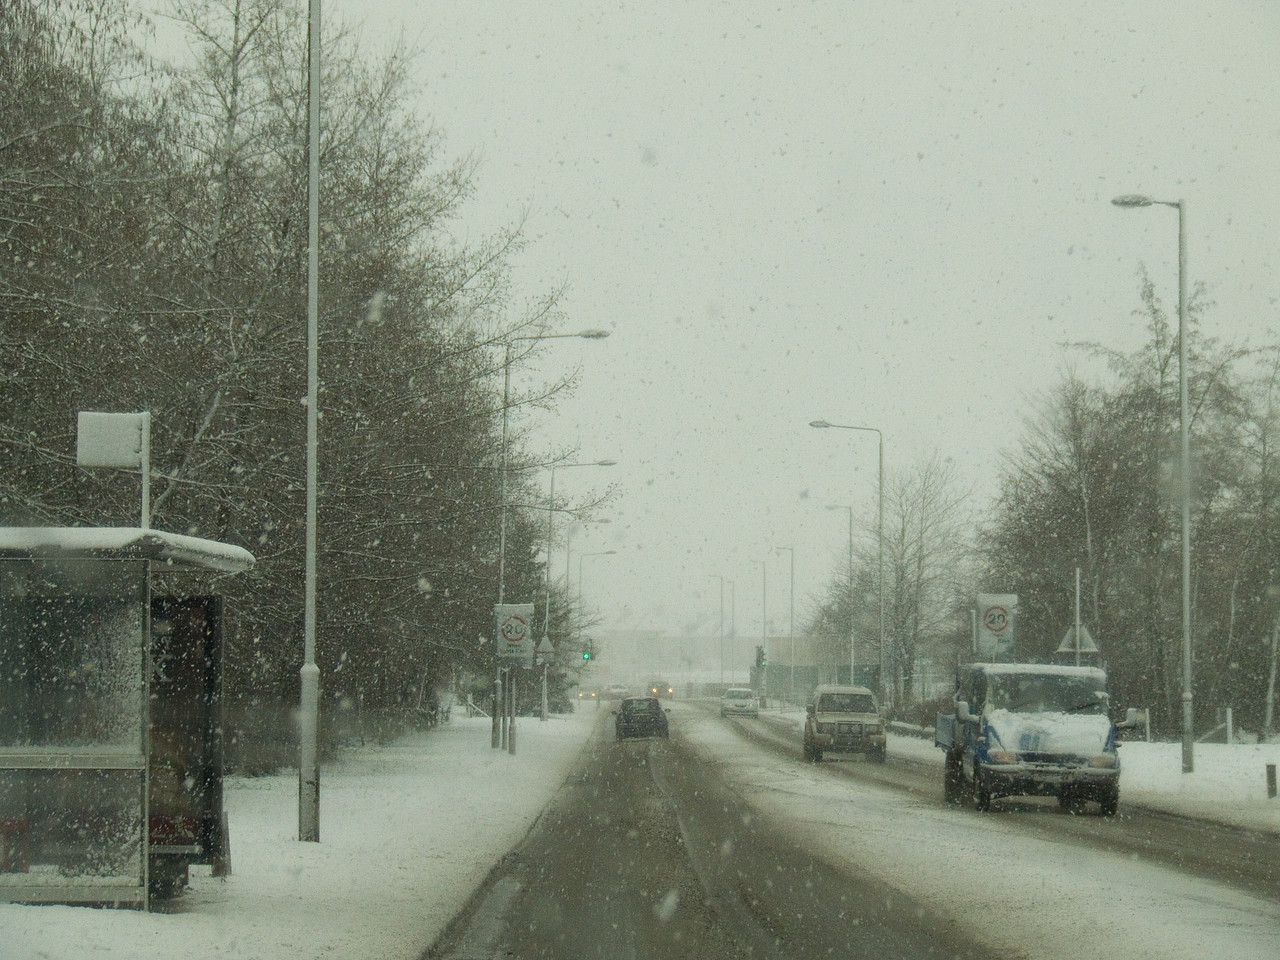 Looking along Beith Road in Johnstone